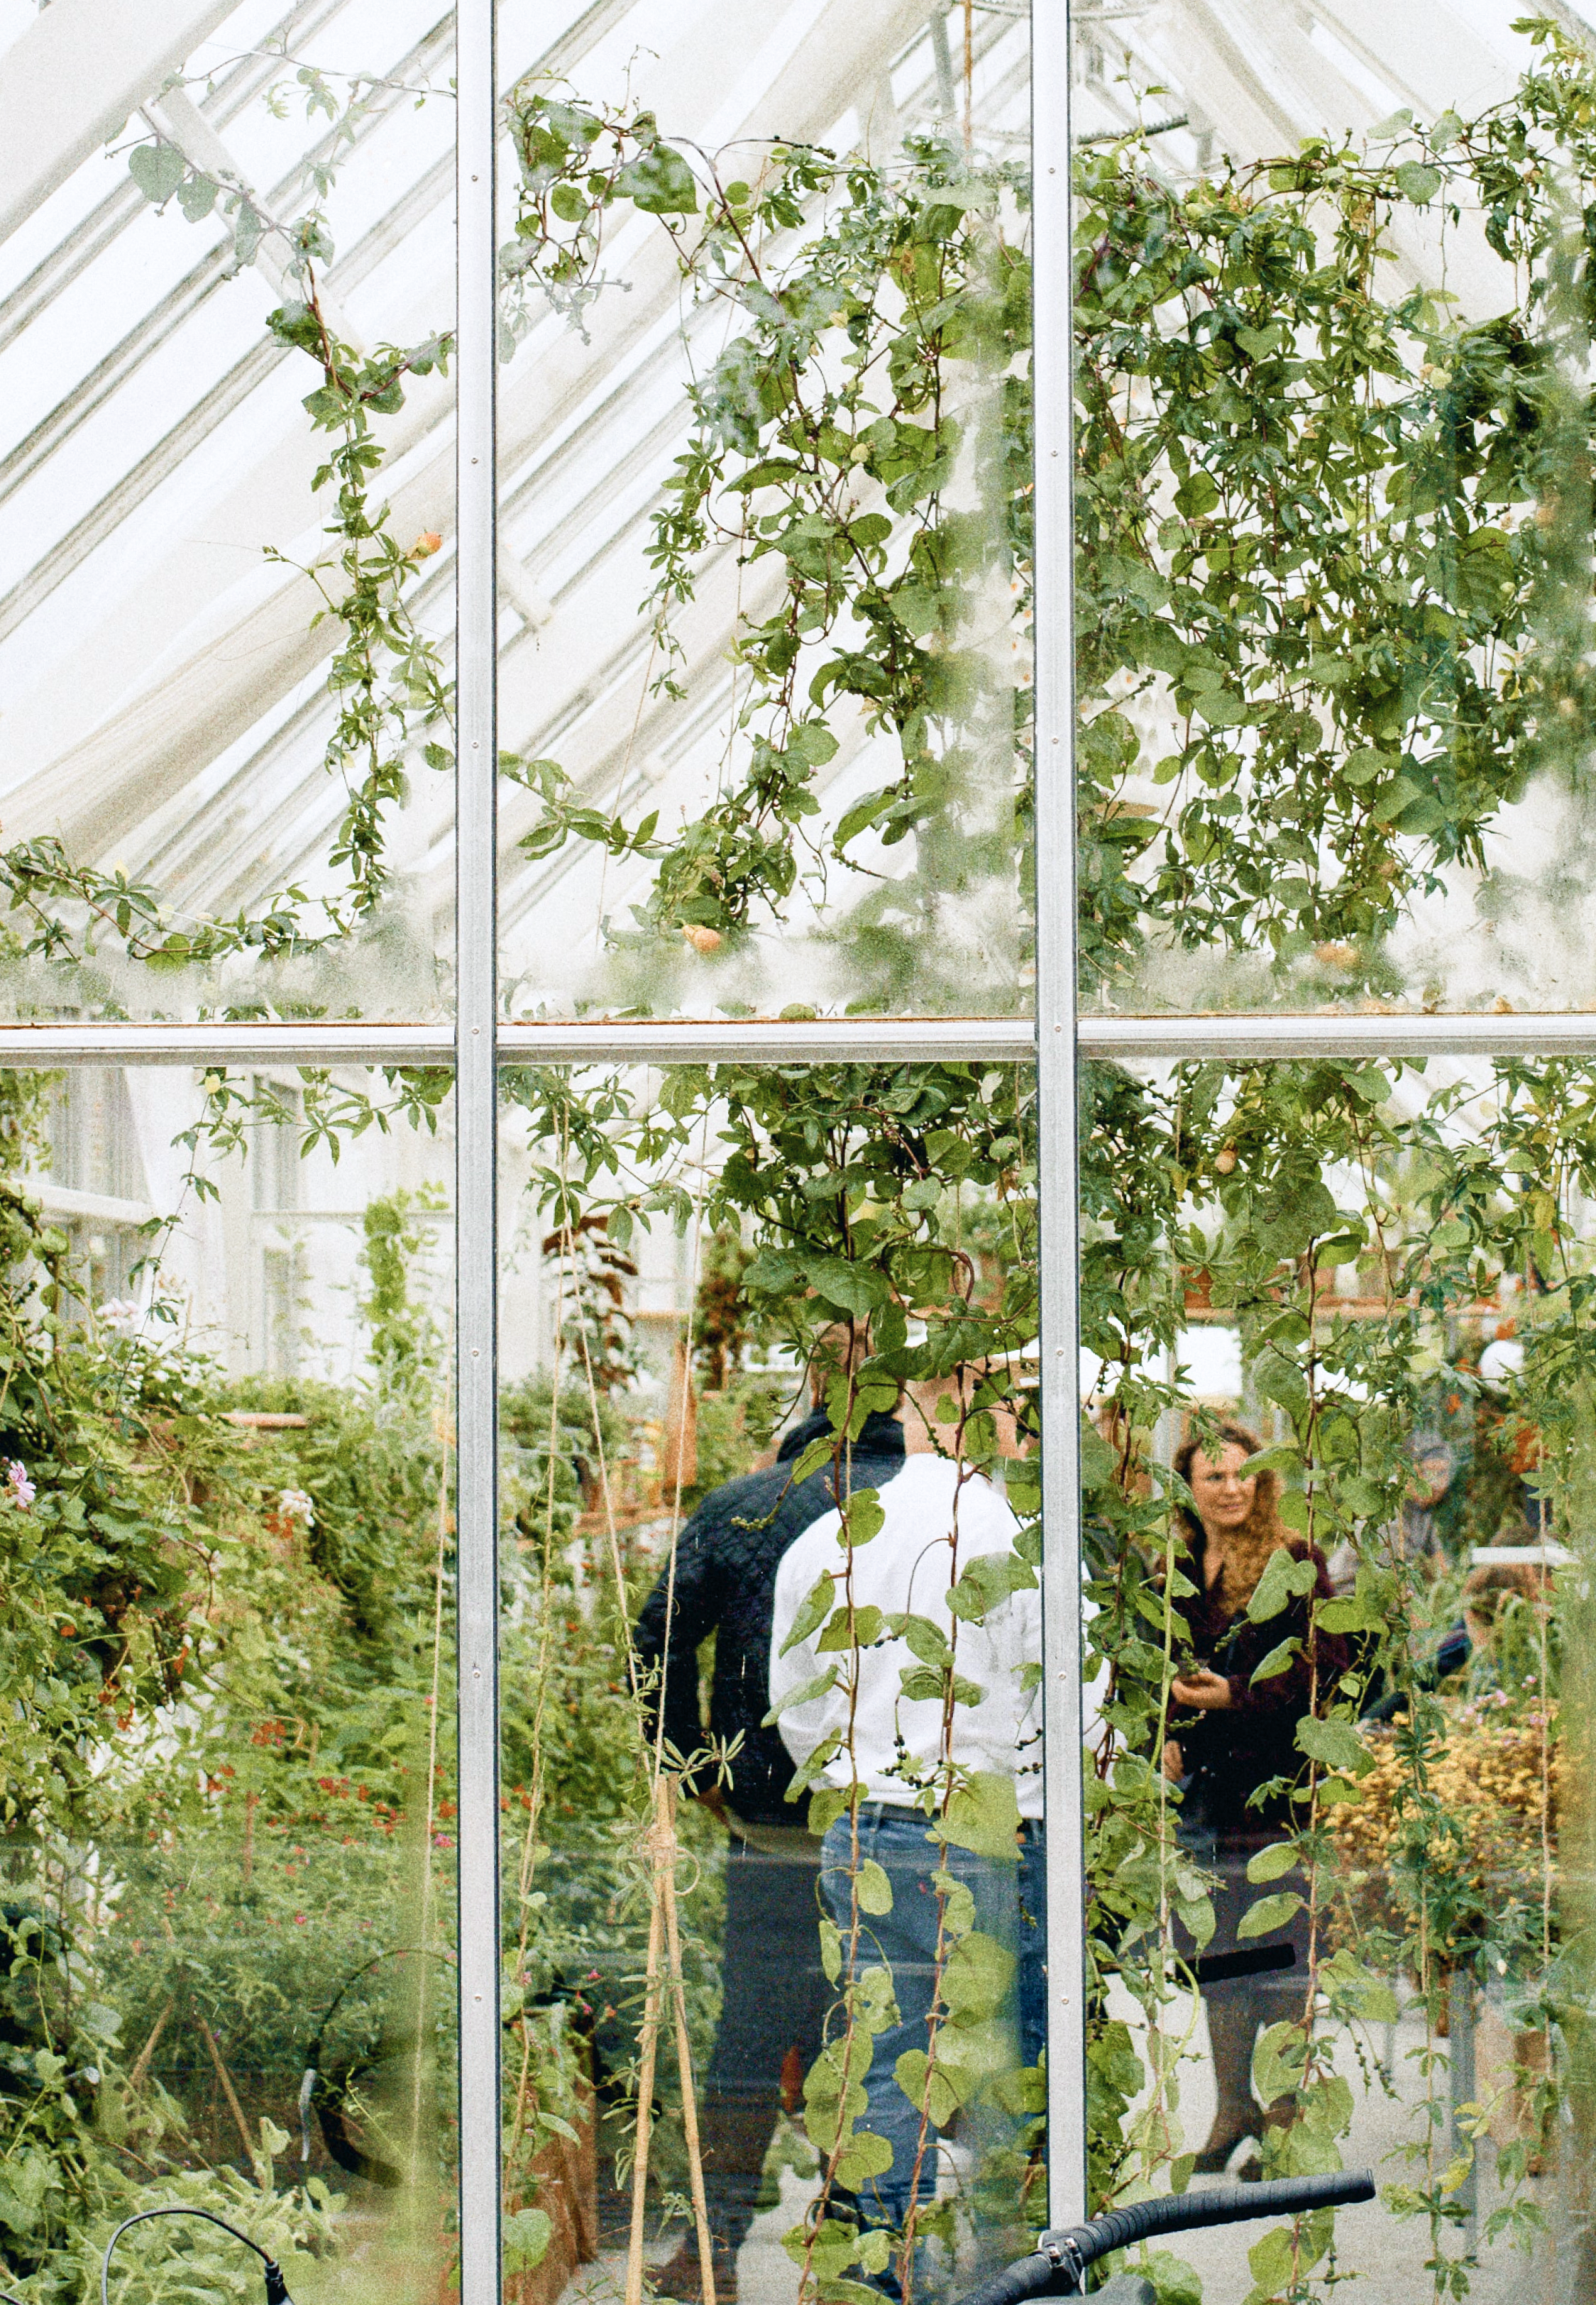 An image taken through a glass wall of a greenhouse of three people talking inside